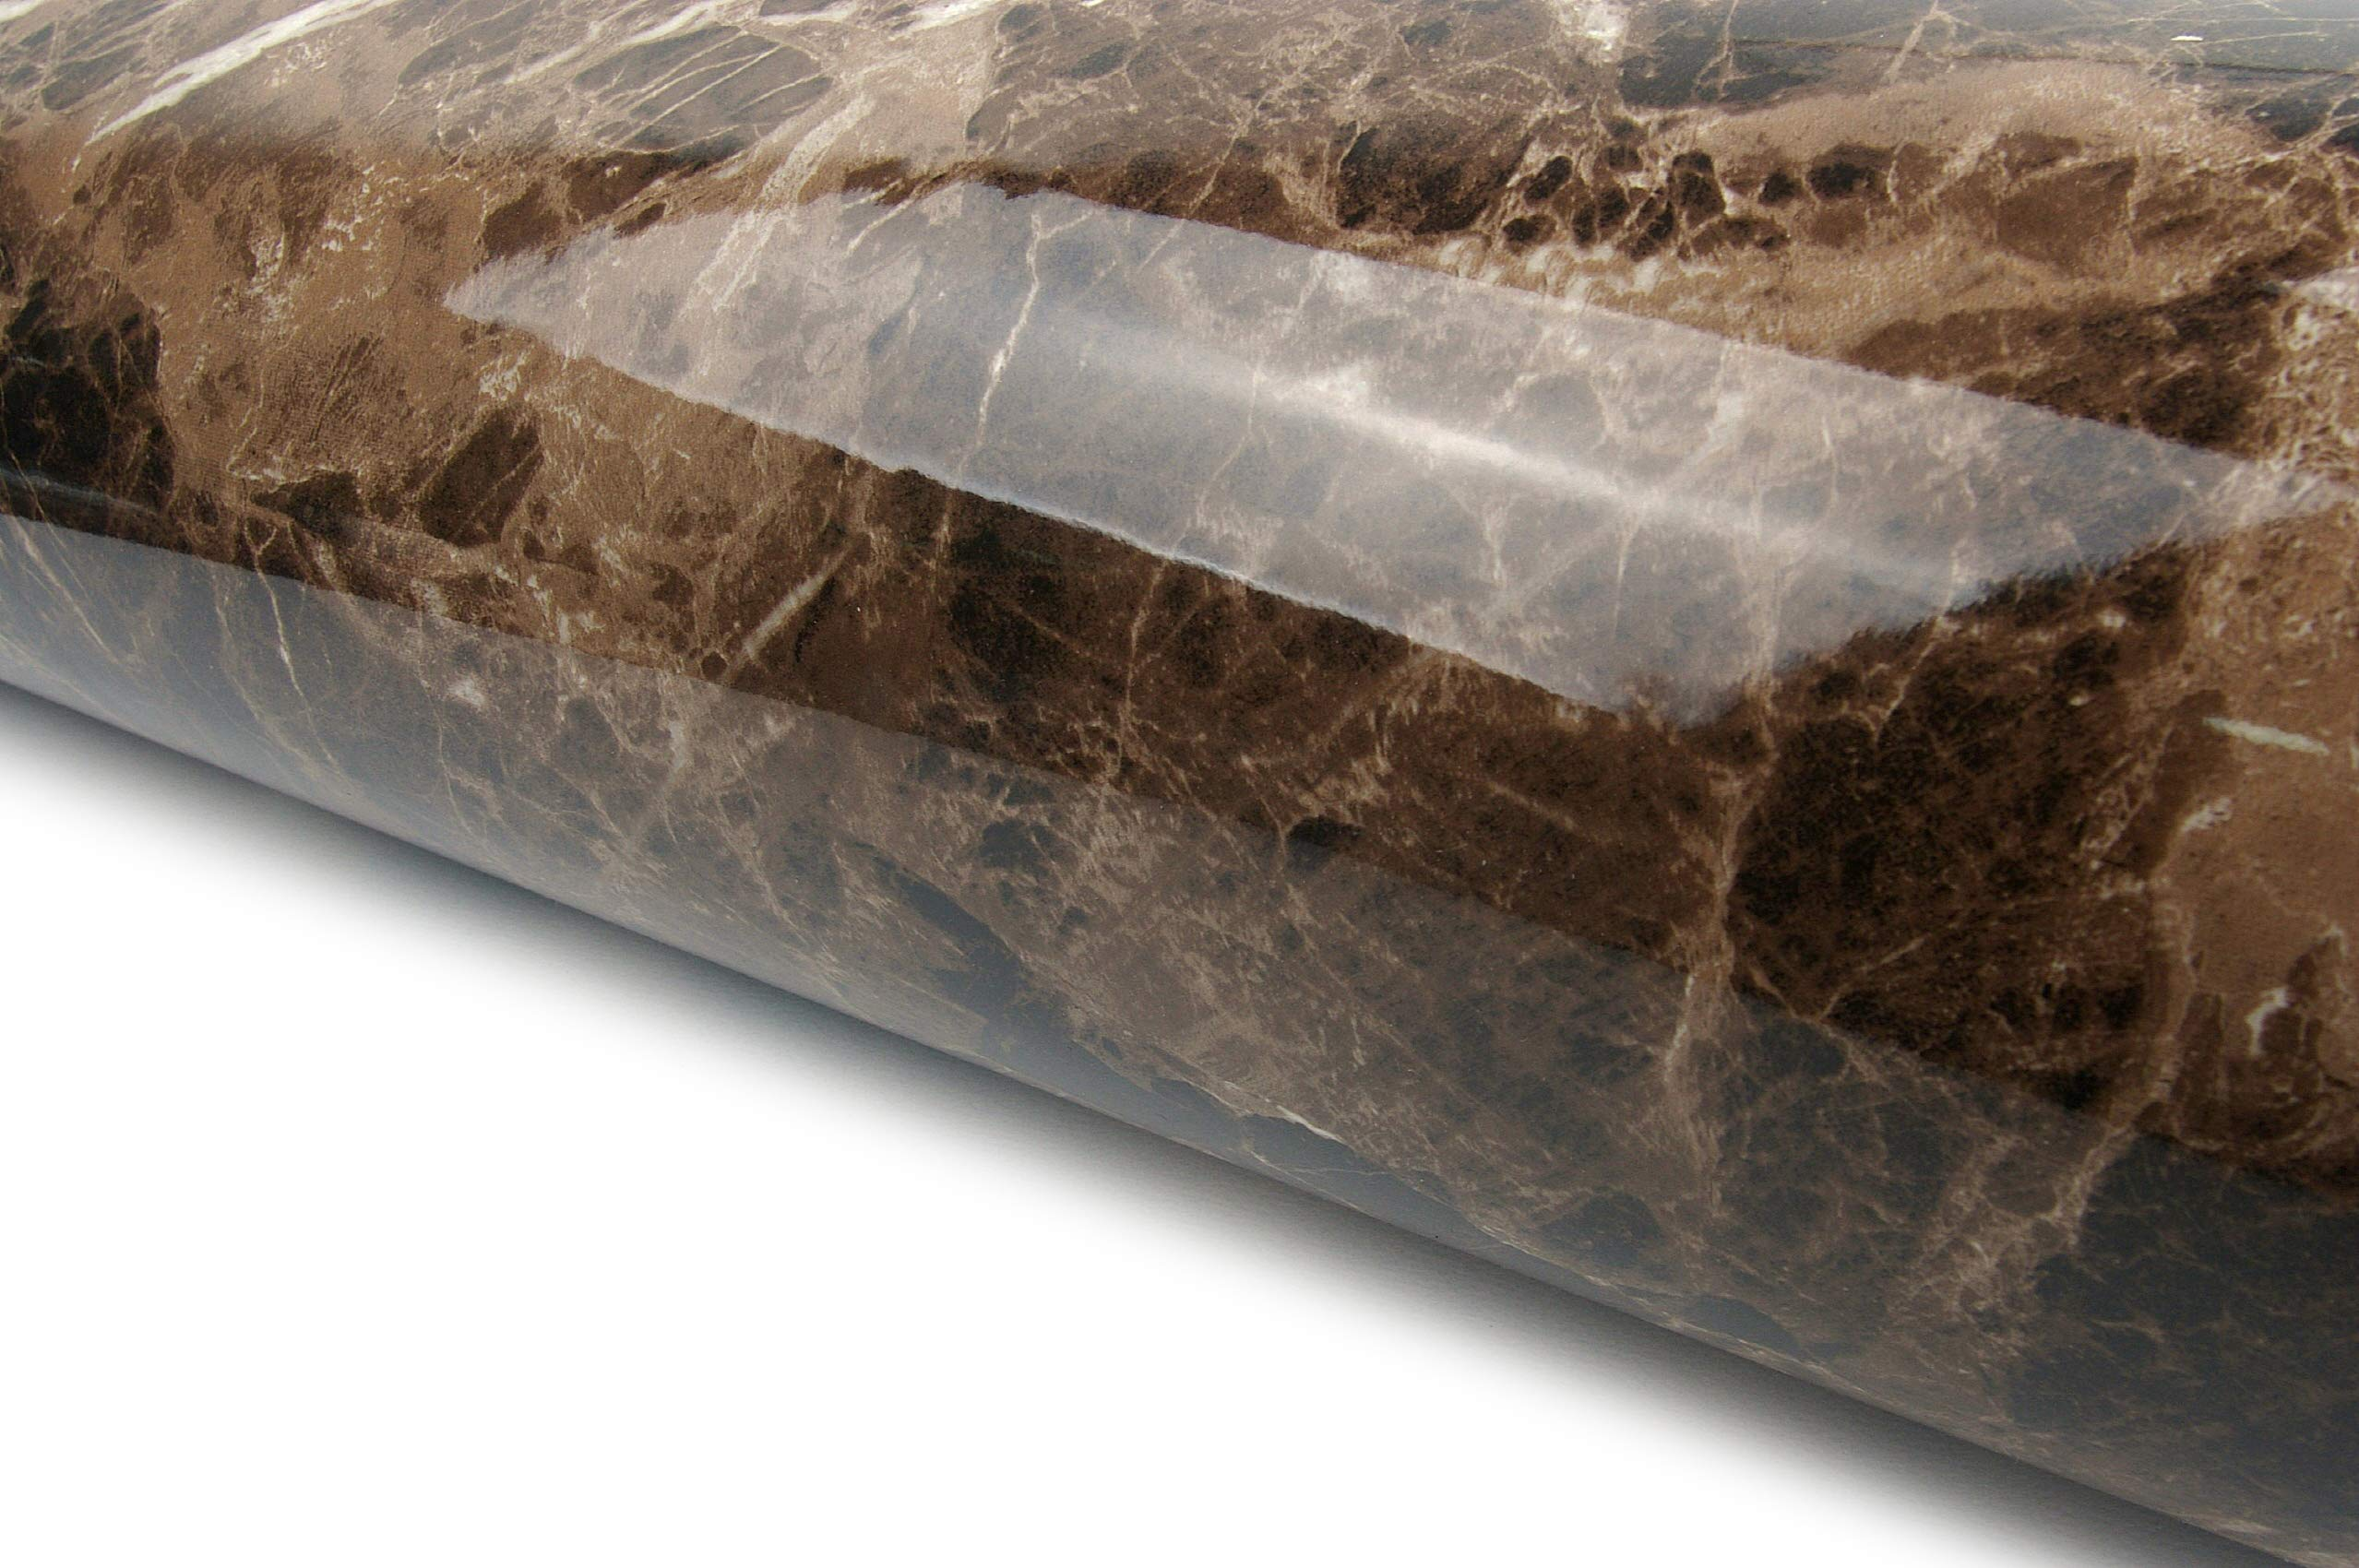 Marble Look Film Brown High Glossy Granite Effect Vinyl Self Adhesive Peel-Stick Brown Counter Top (2' x 6.56 ft(2Pack)) by Very Berry Sticker (Image #1)